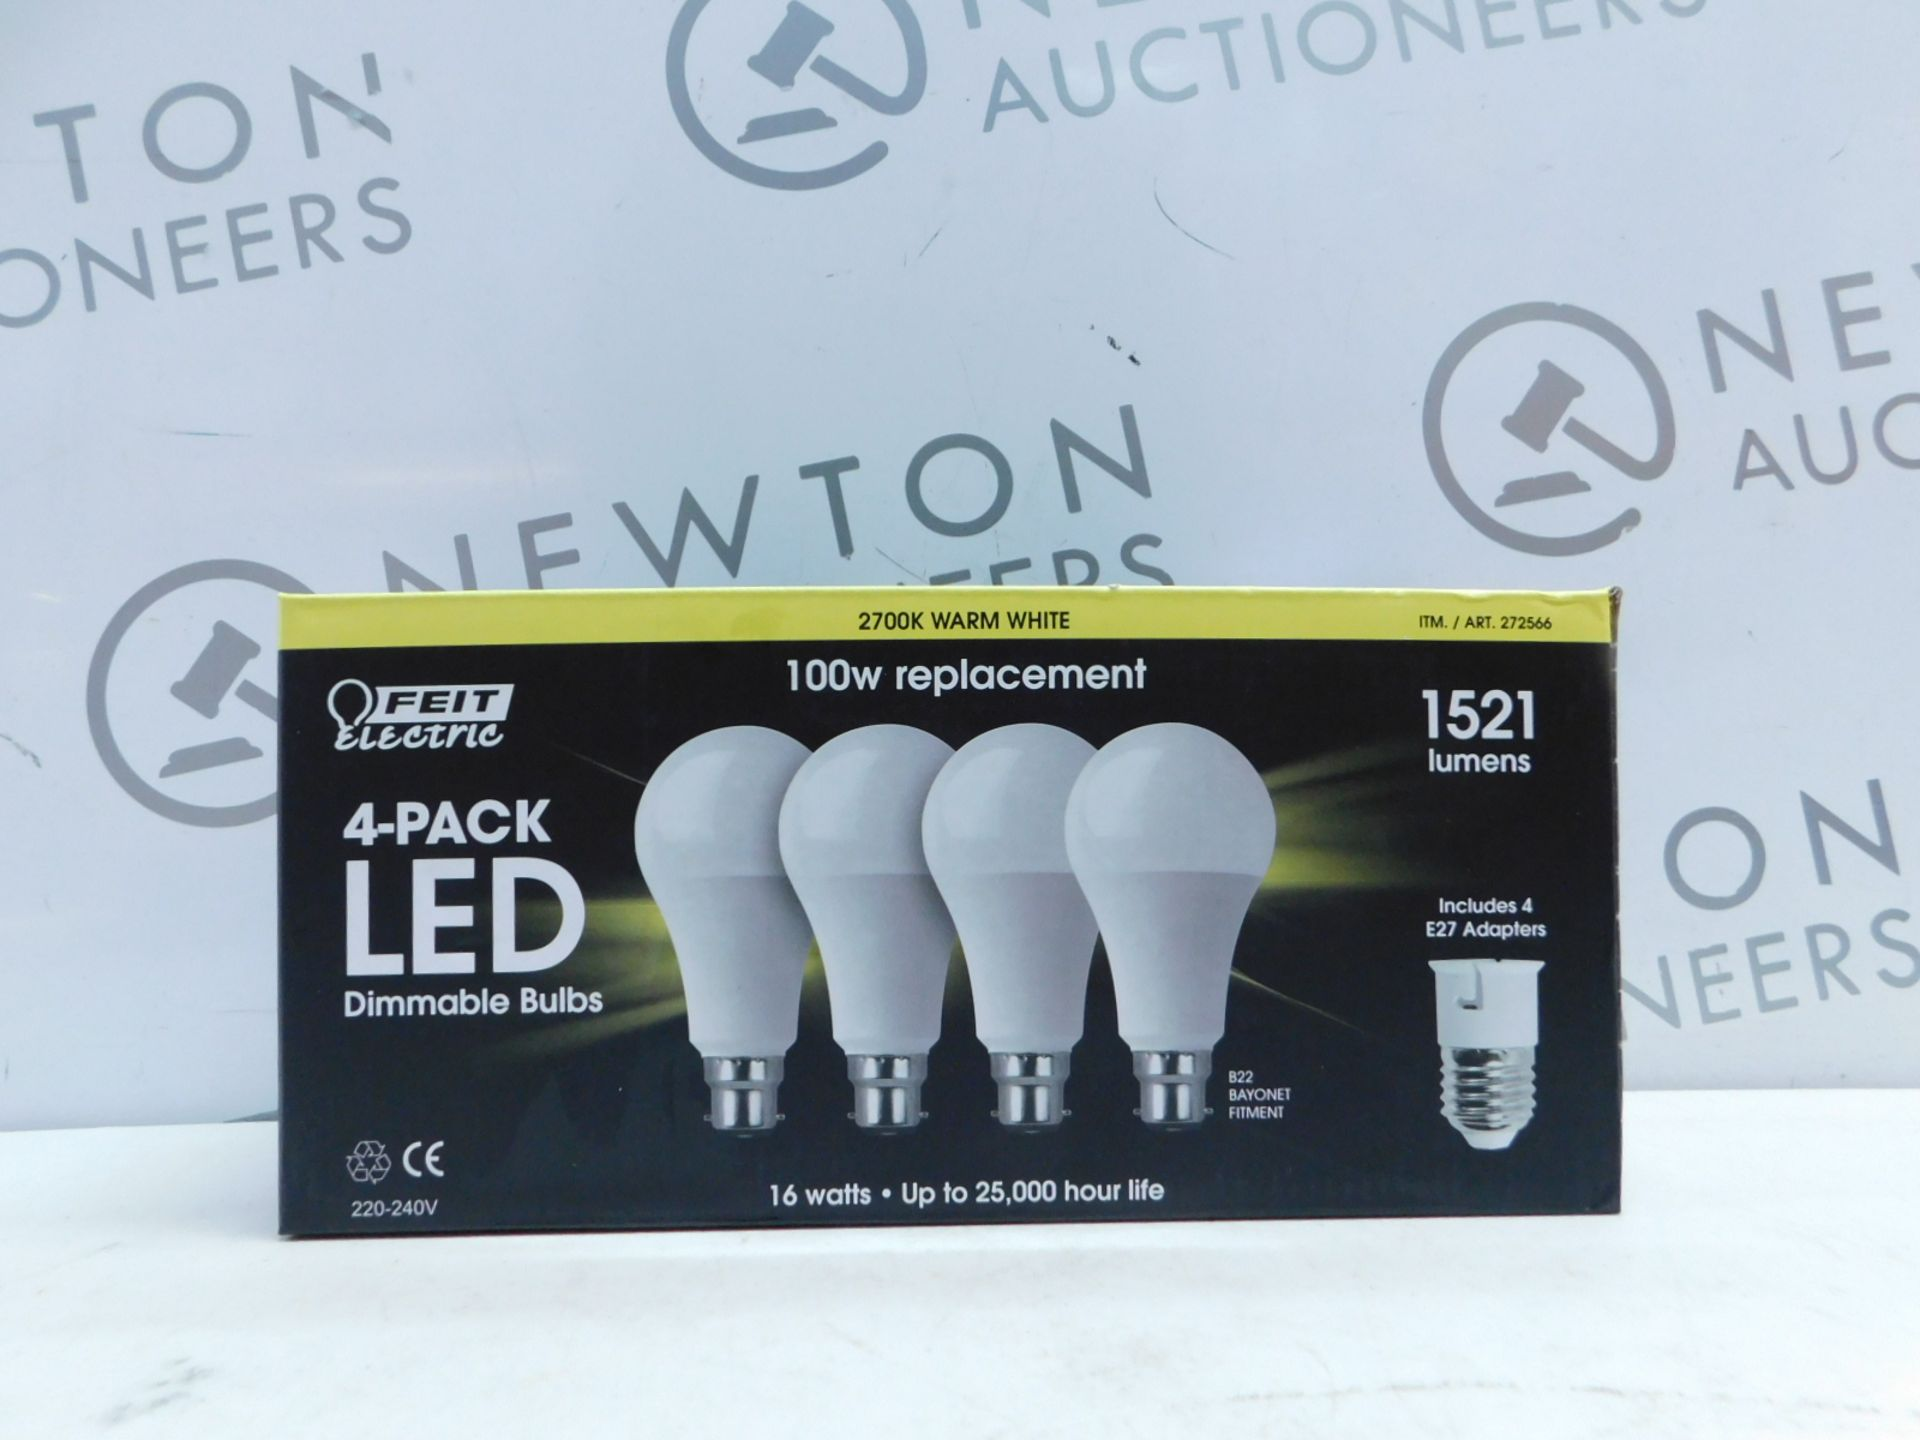 Lot 28 - 1 BOXED FEIT ELECTRIC 4PK LED 100W DIMMABLE BULBS WITH E27 ADAPTERS RRP £39.99